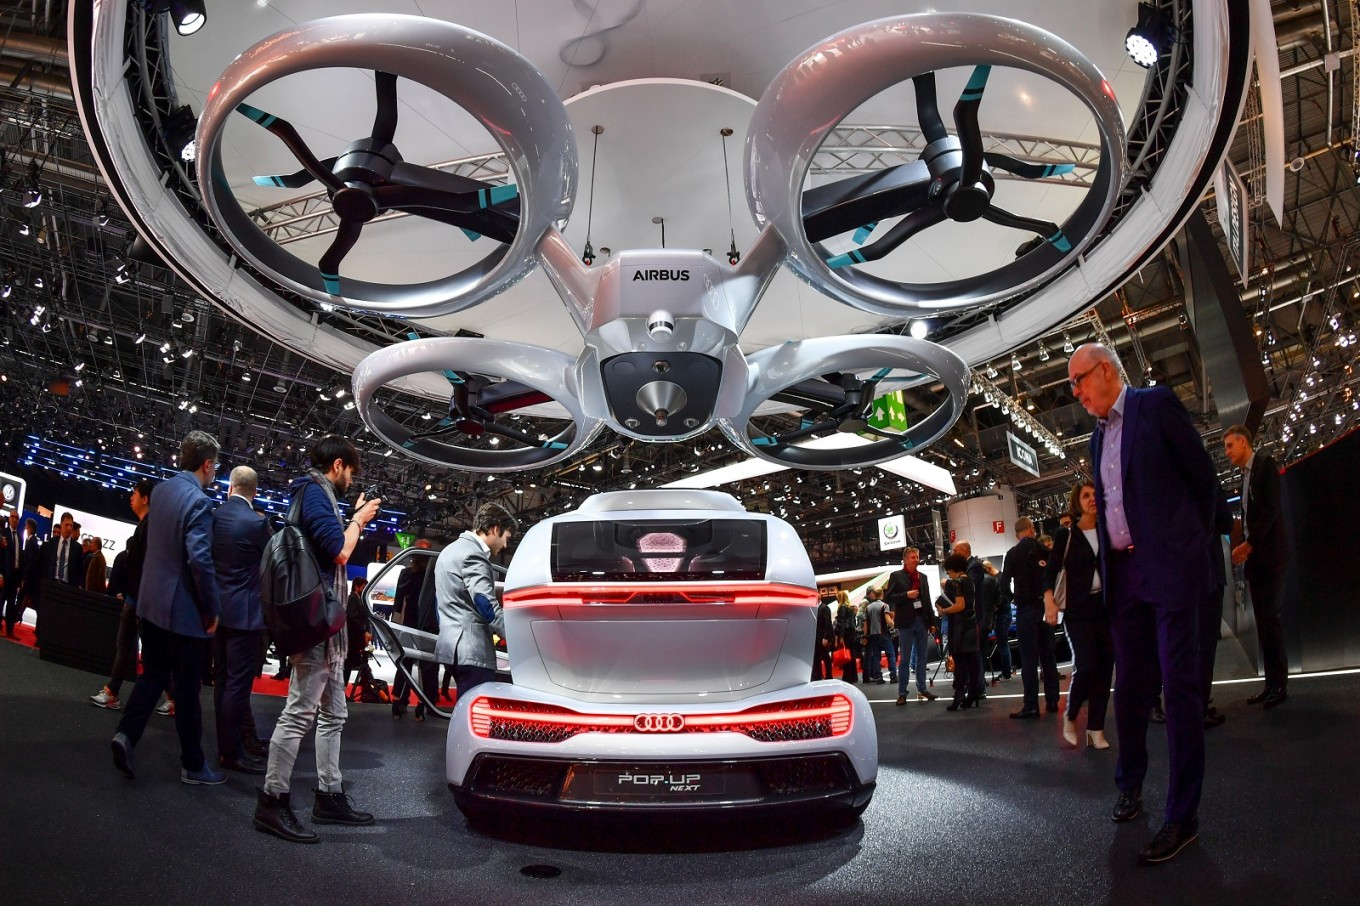 Flying cars mooted for Paris' public transport network